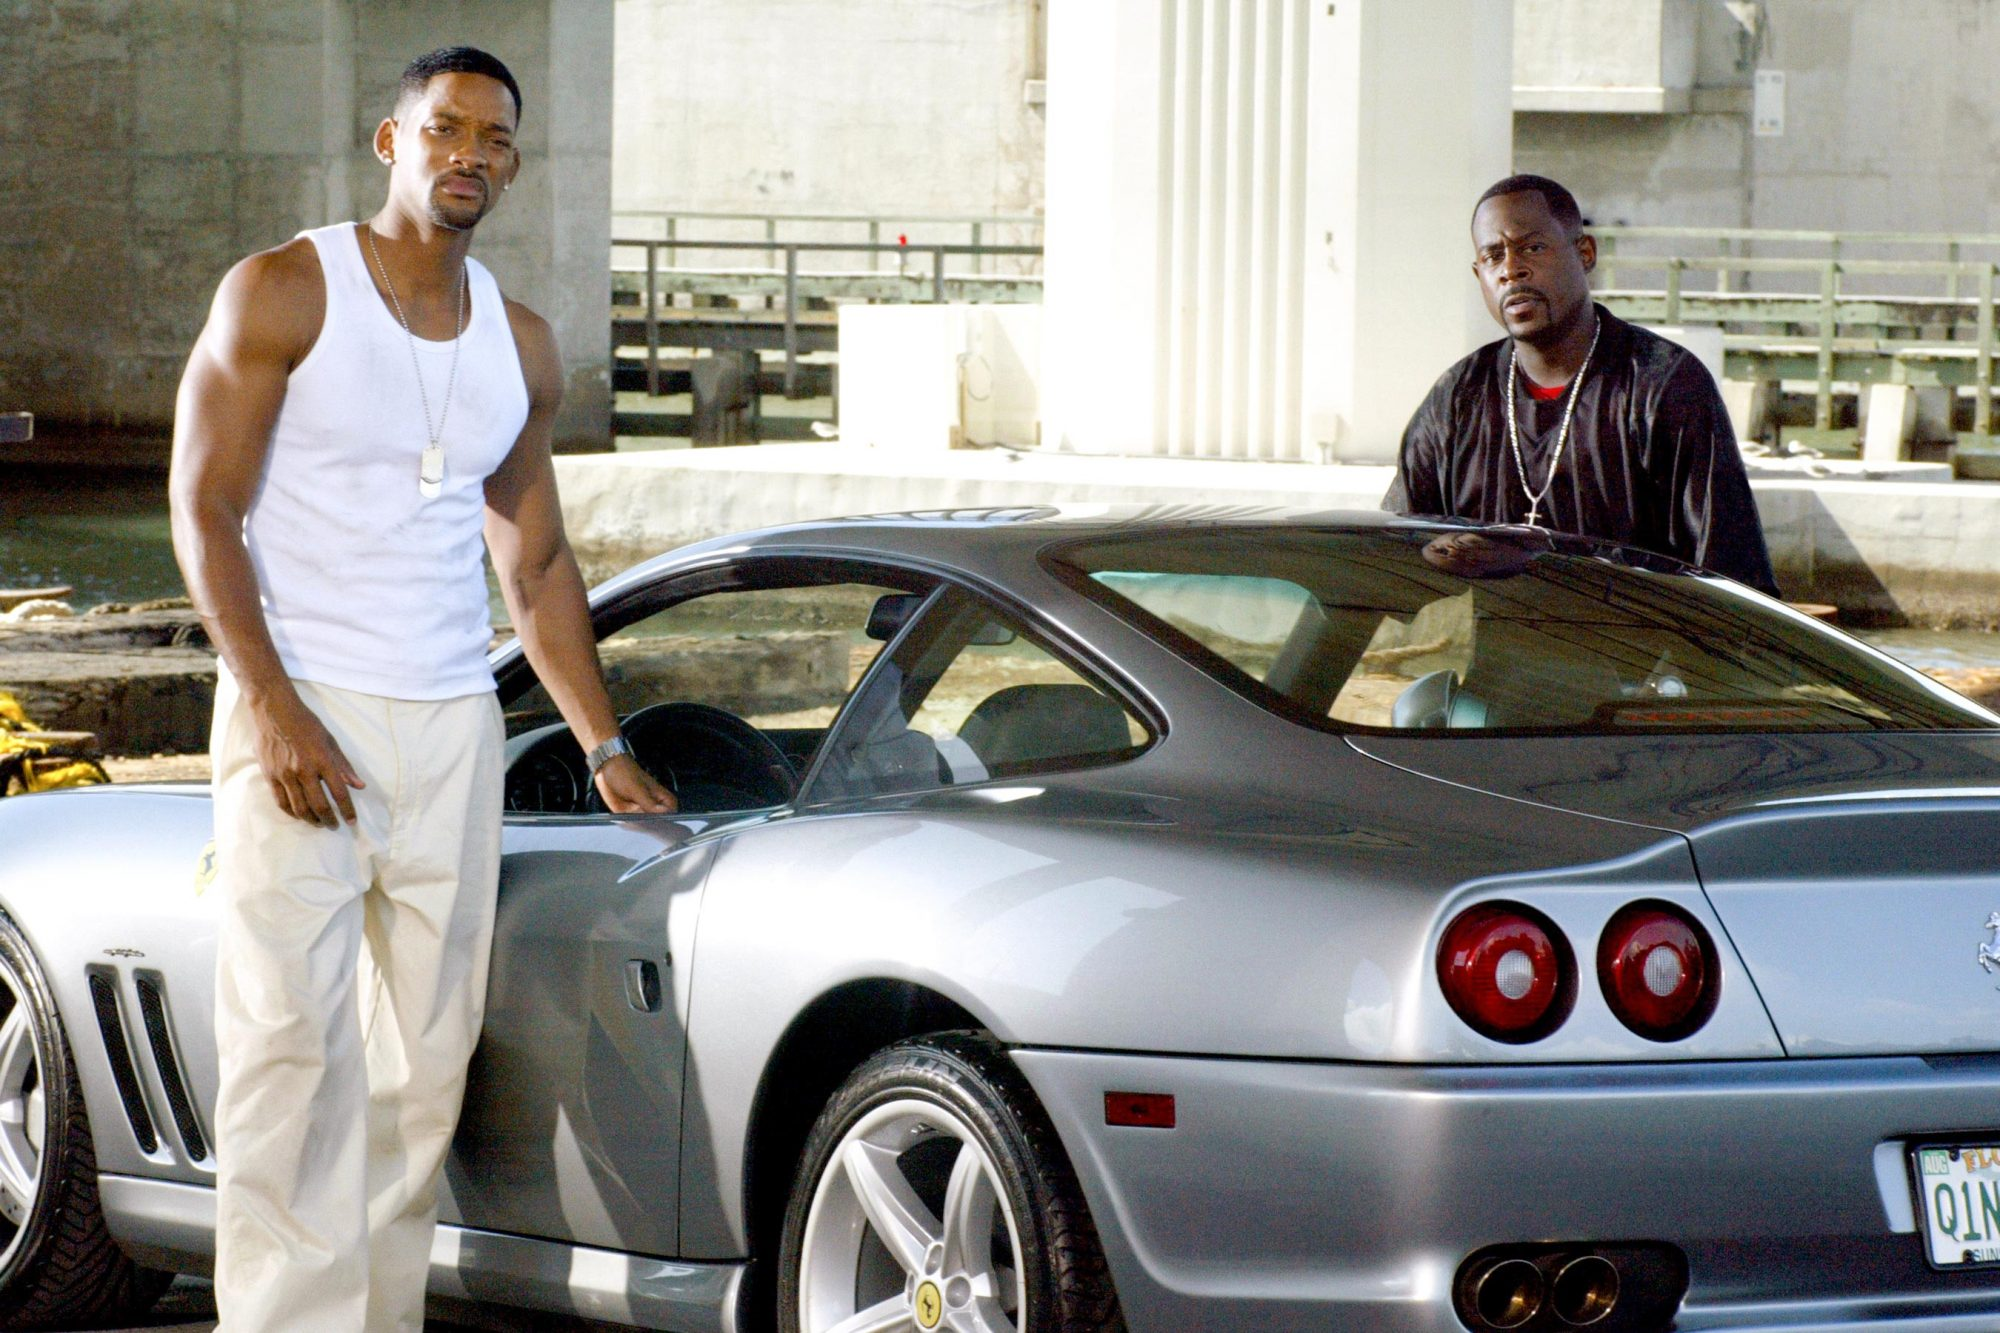 BAD BOYS 2, Will Smith, Martin Lawrence, 2003, (c) Columbia/courtesy Everett Collection